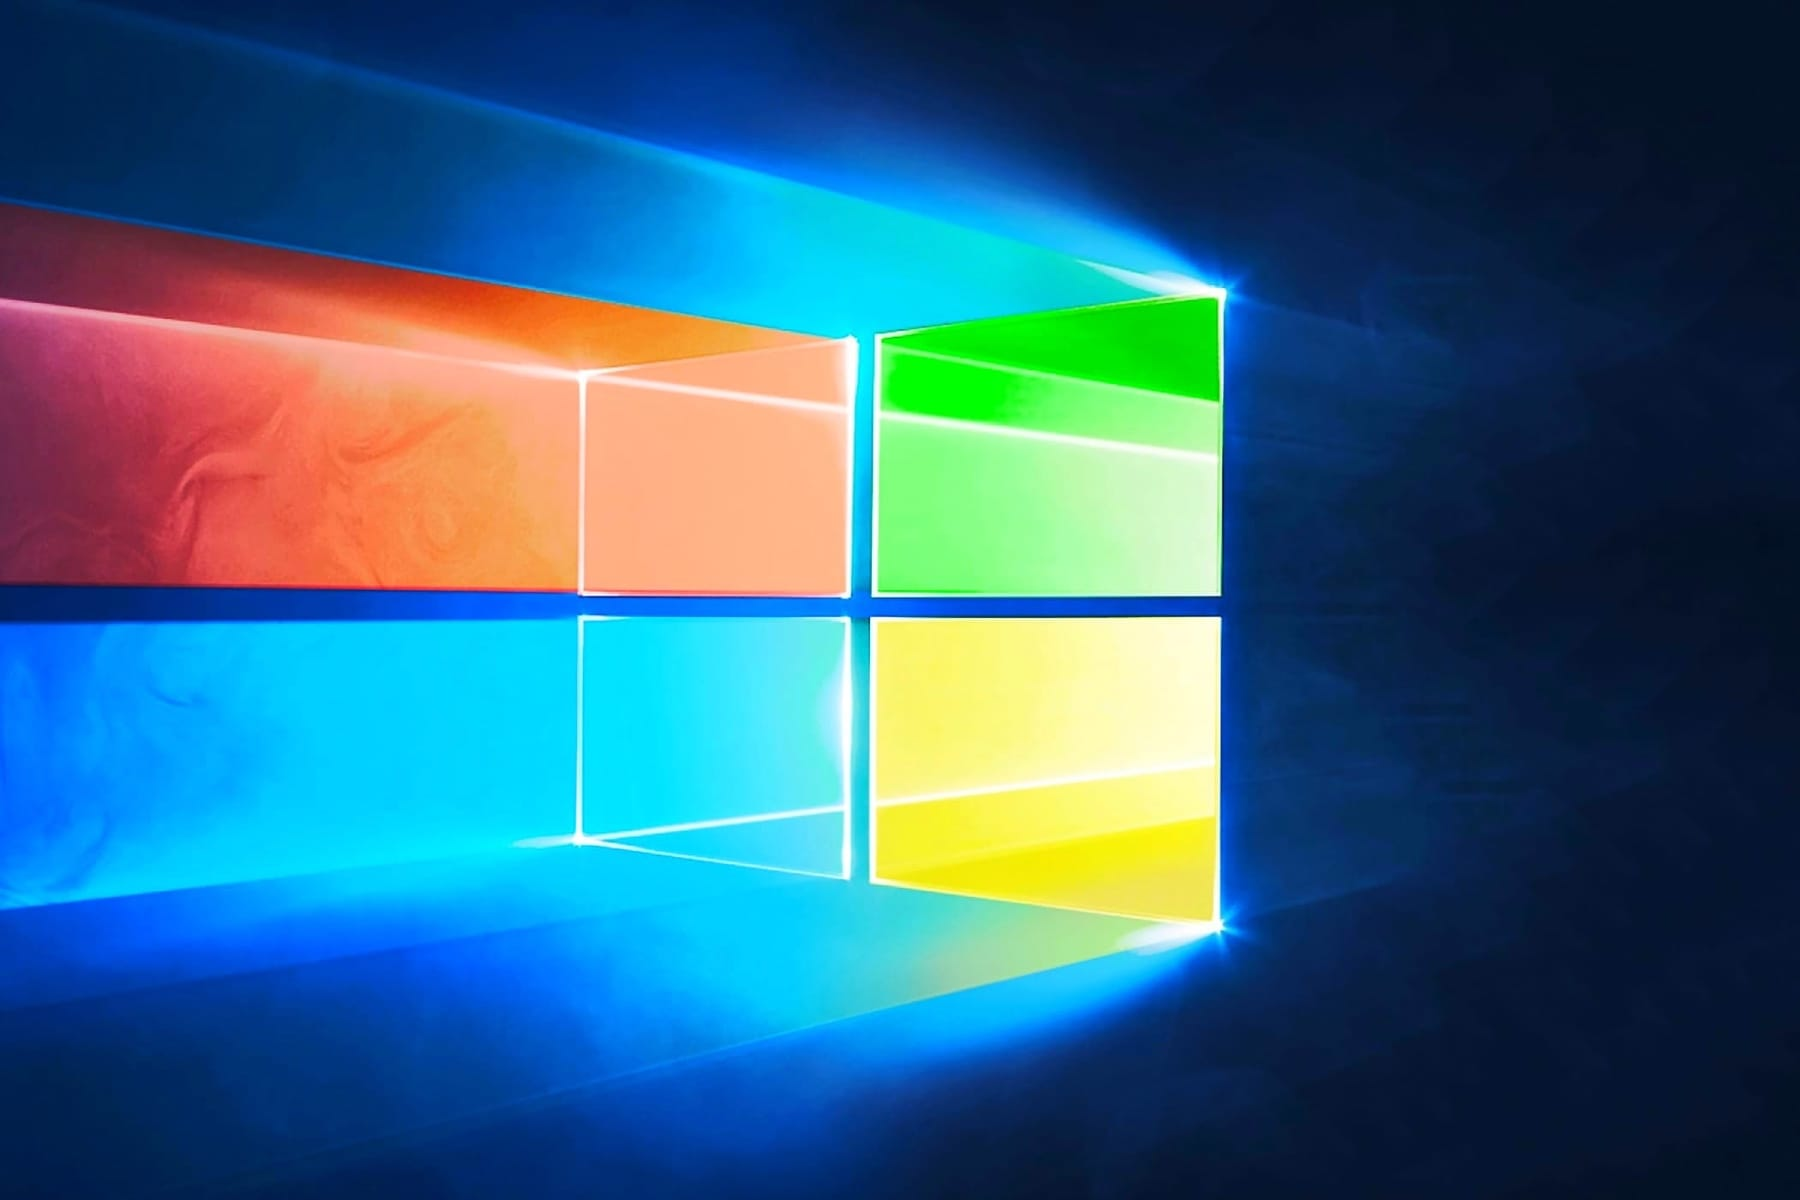 ویندوز 10 / windows 10